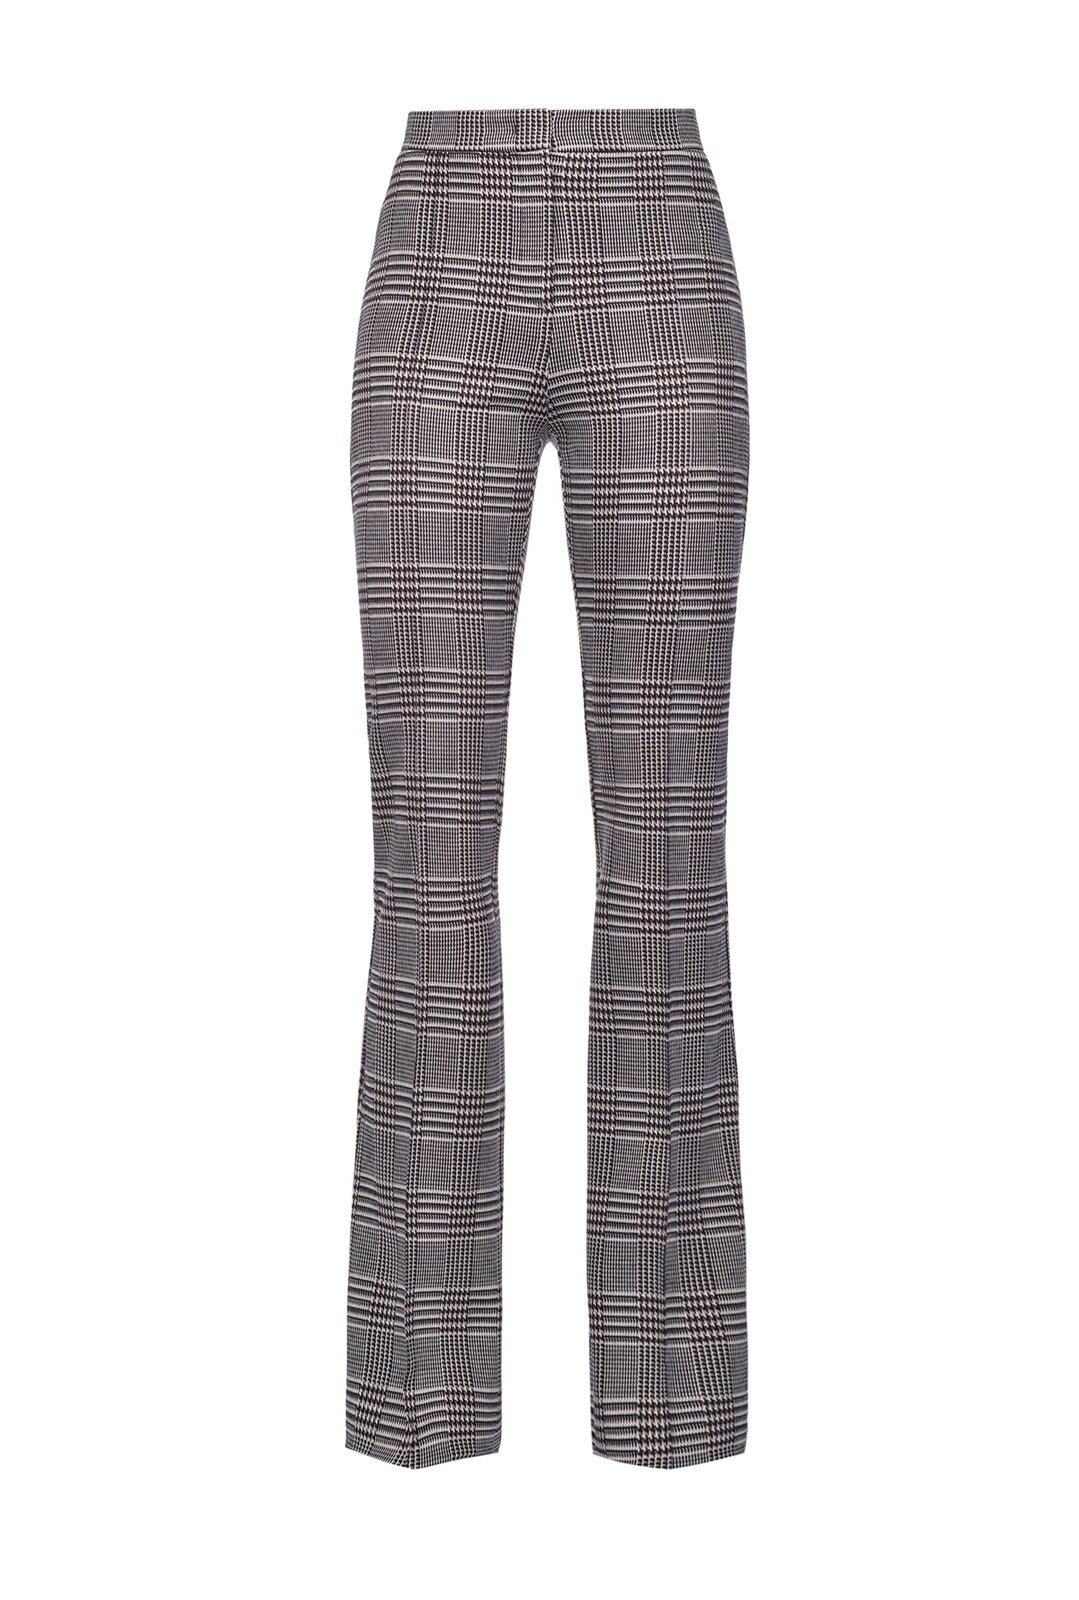 Flare-Fit Pants Wales Design - Pinko